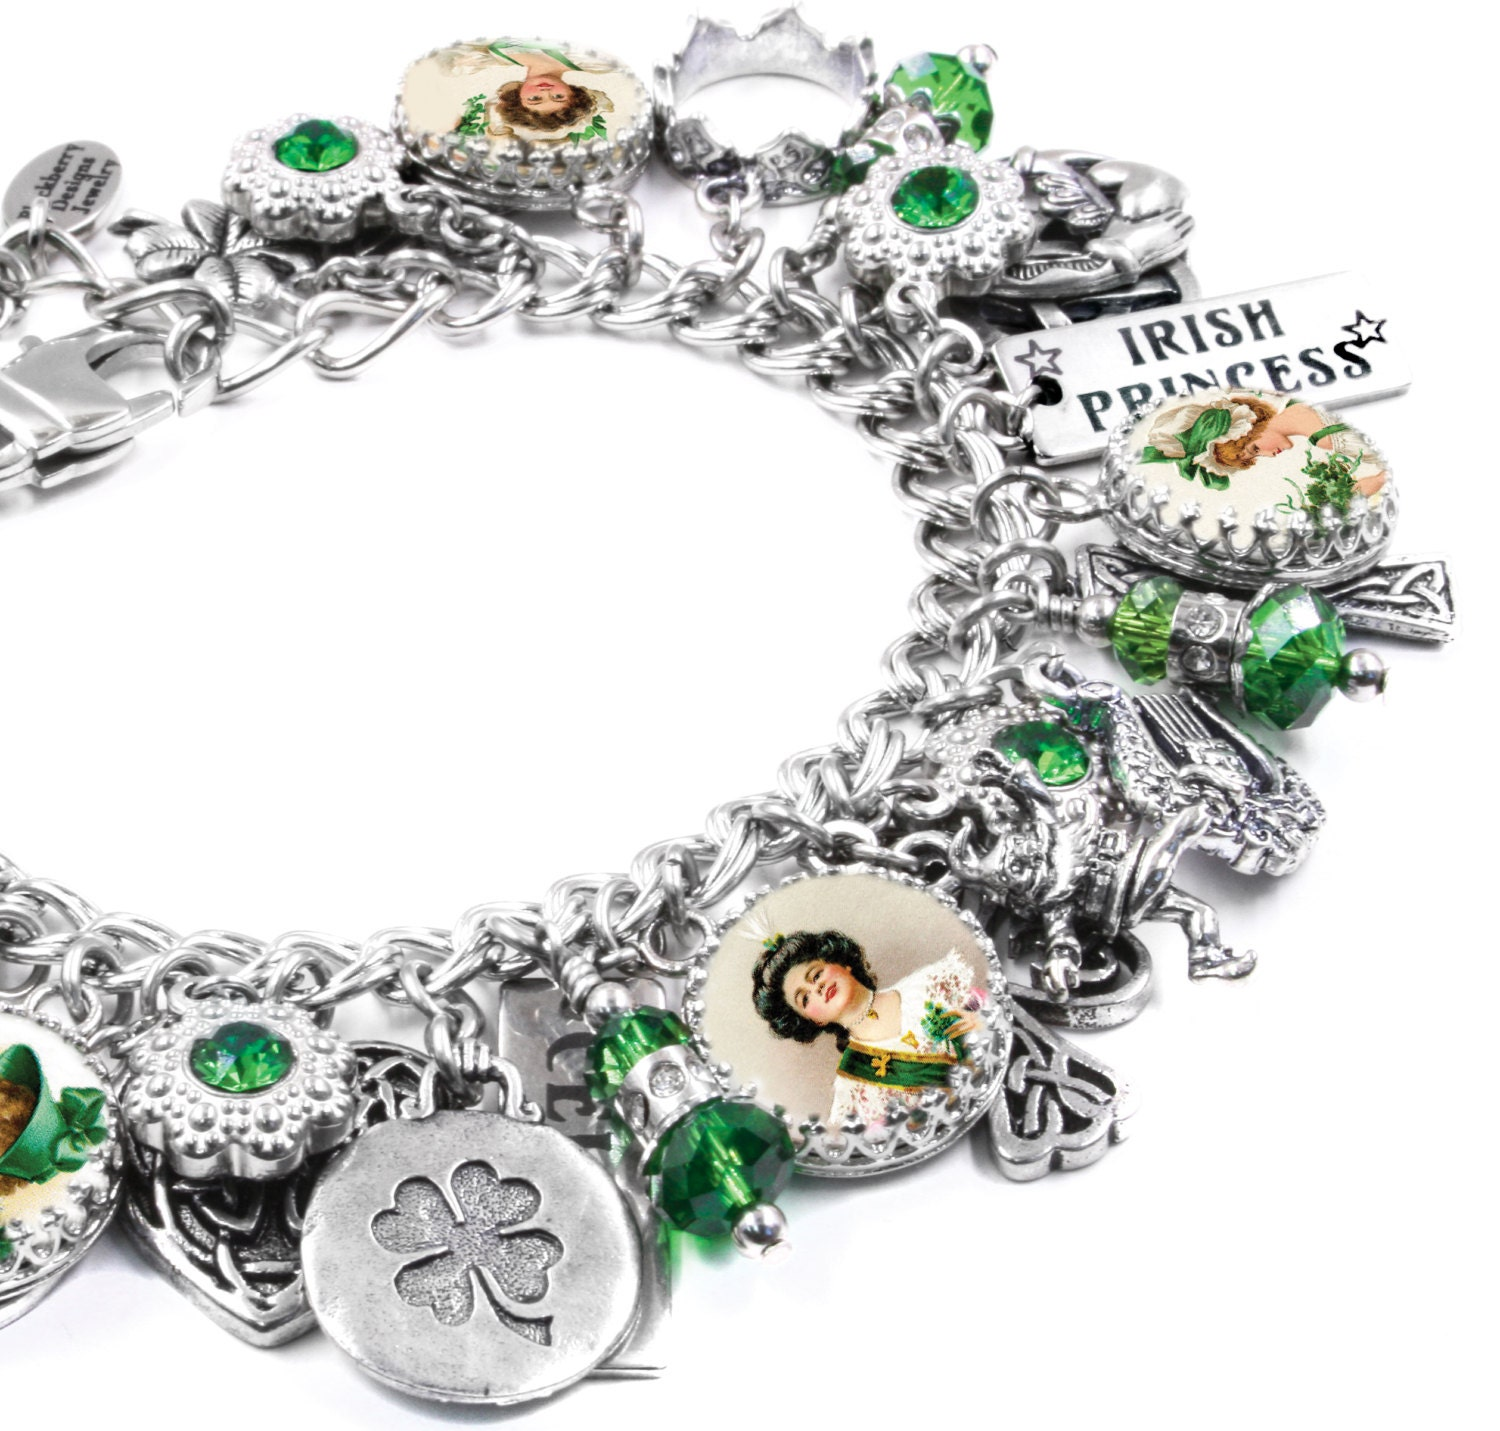 Silver Bracelets With Charms: Celtic Jewelry Silver Charm Bracelet Irish Jewelry Irish